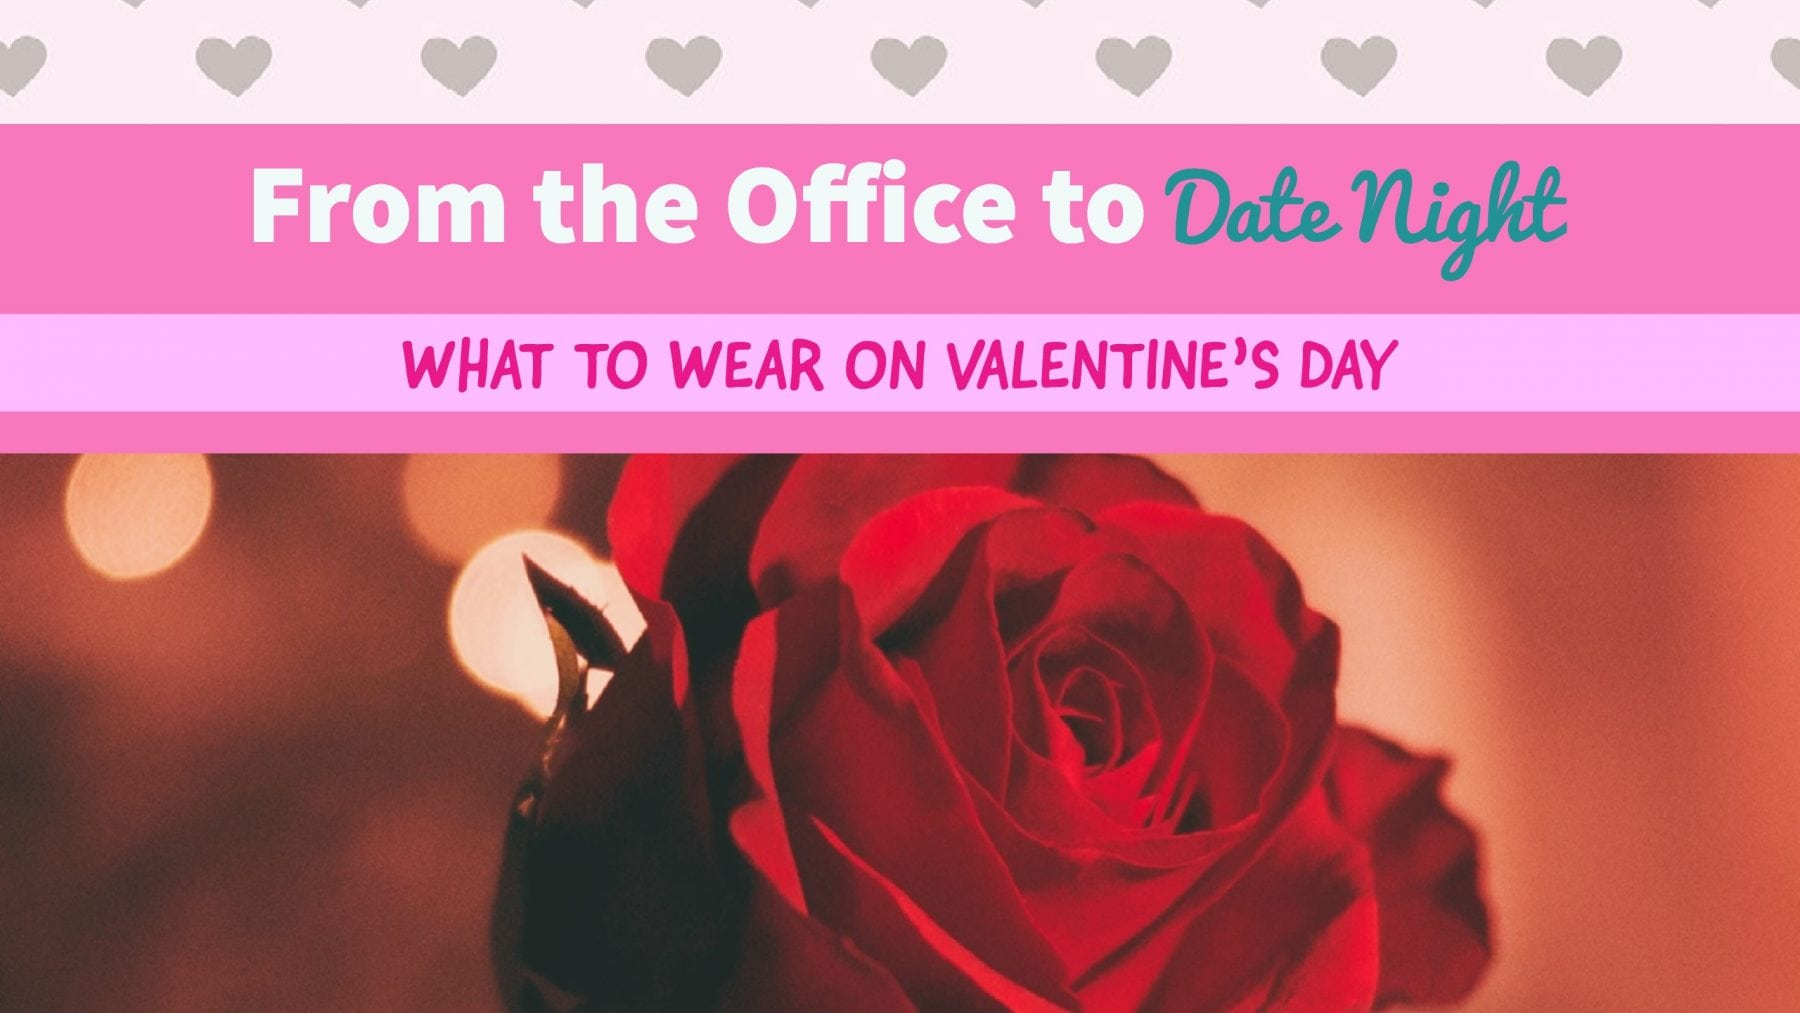 what to wear to work on valentine's day